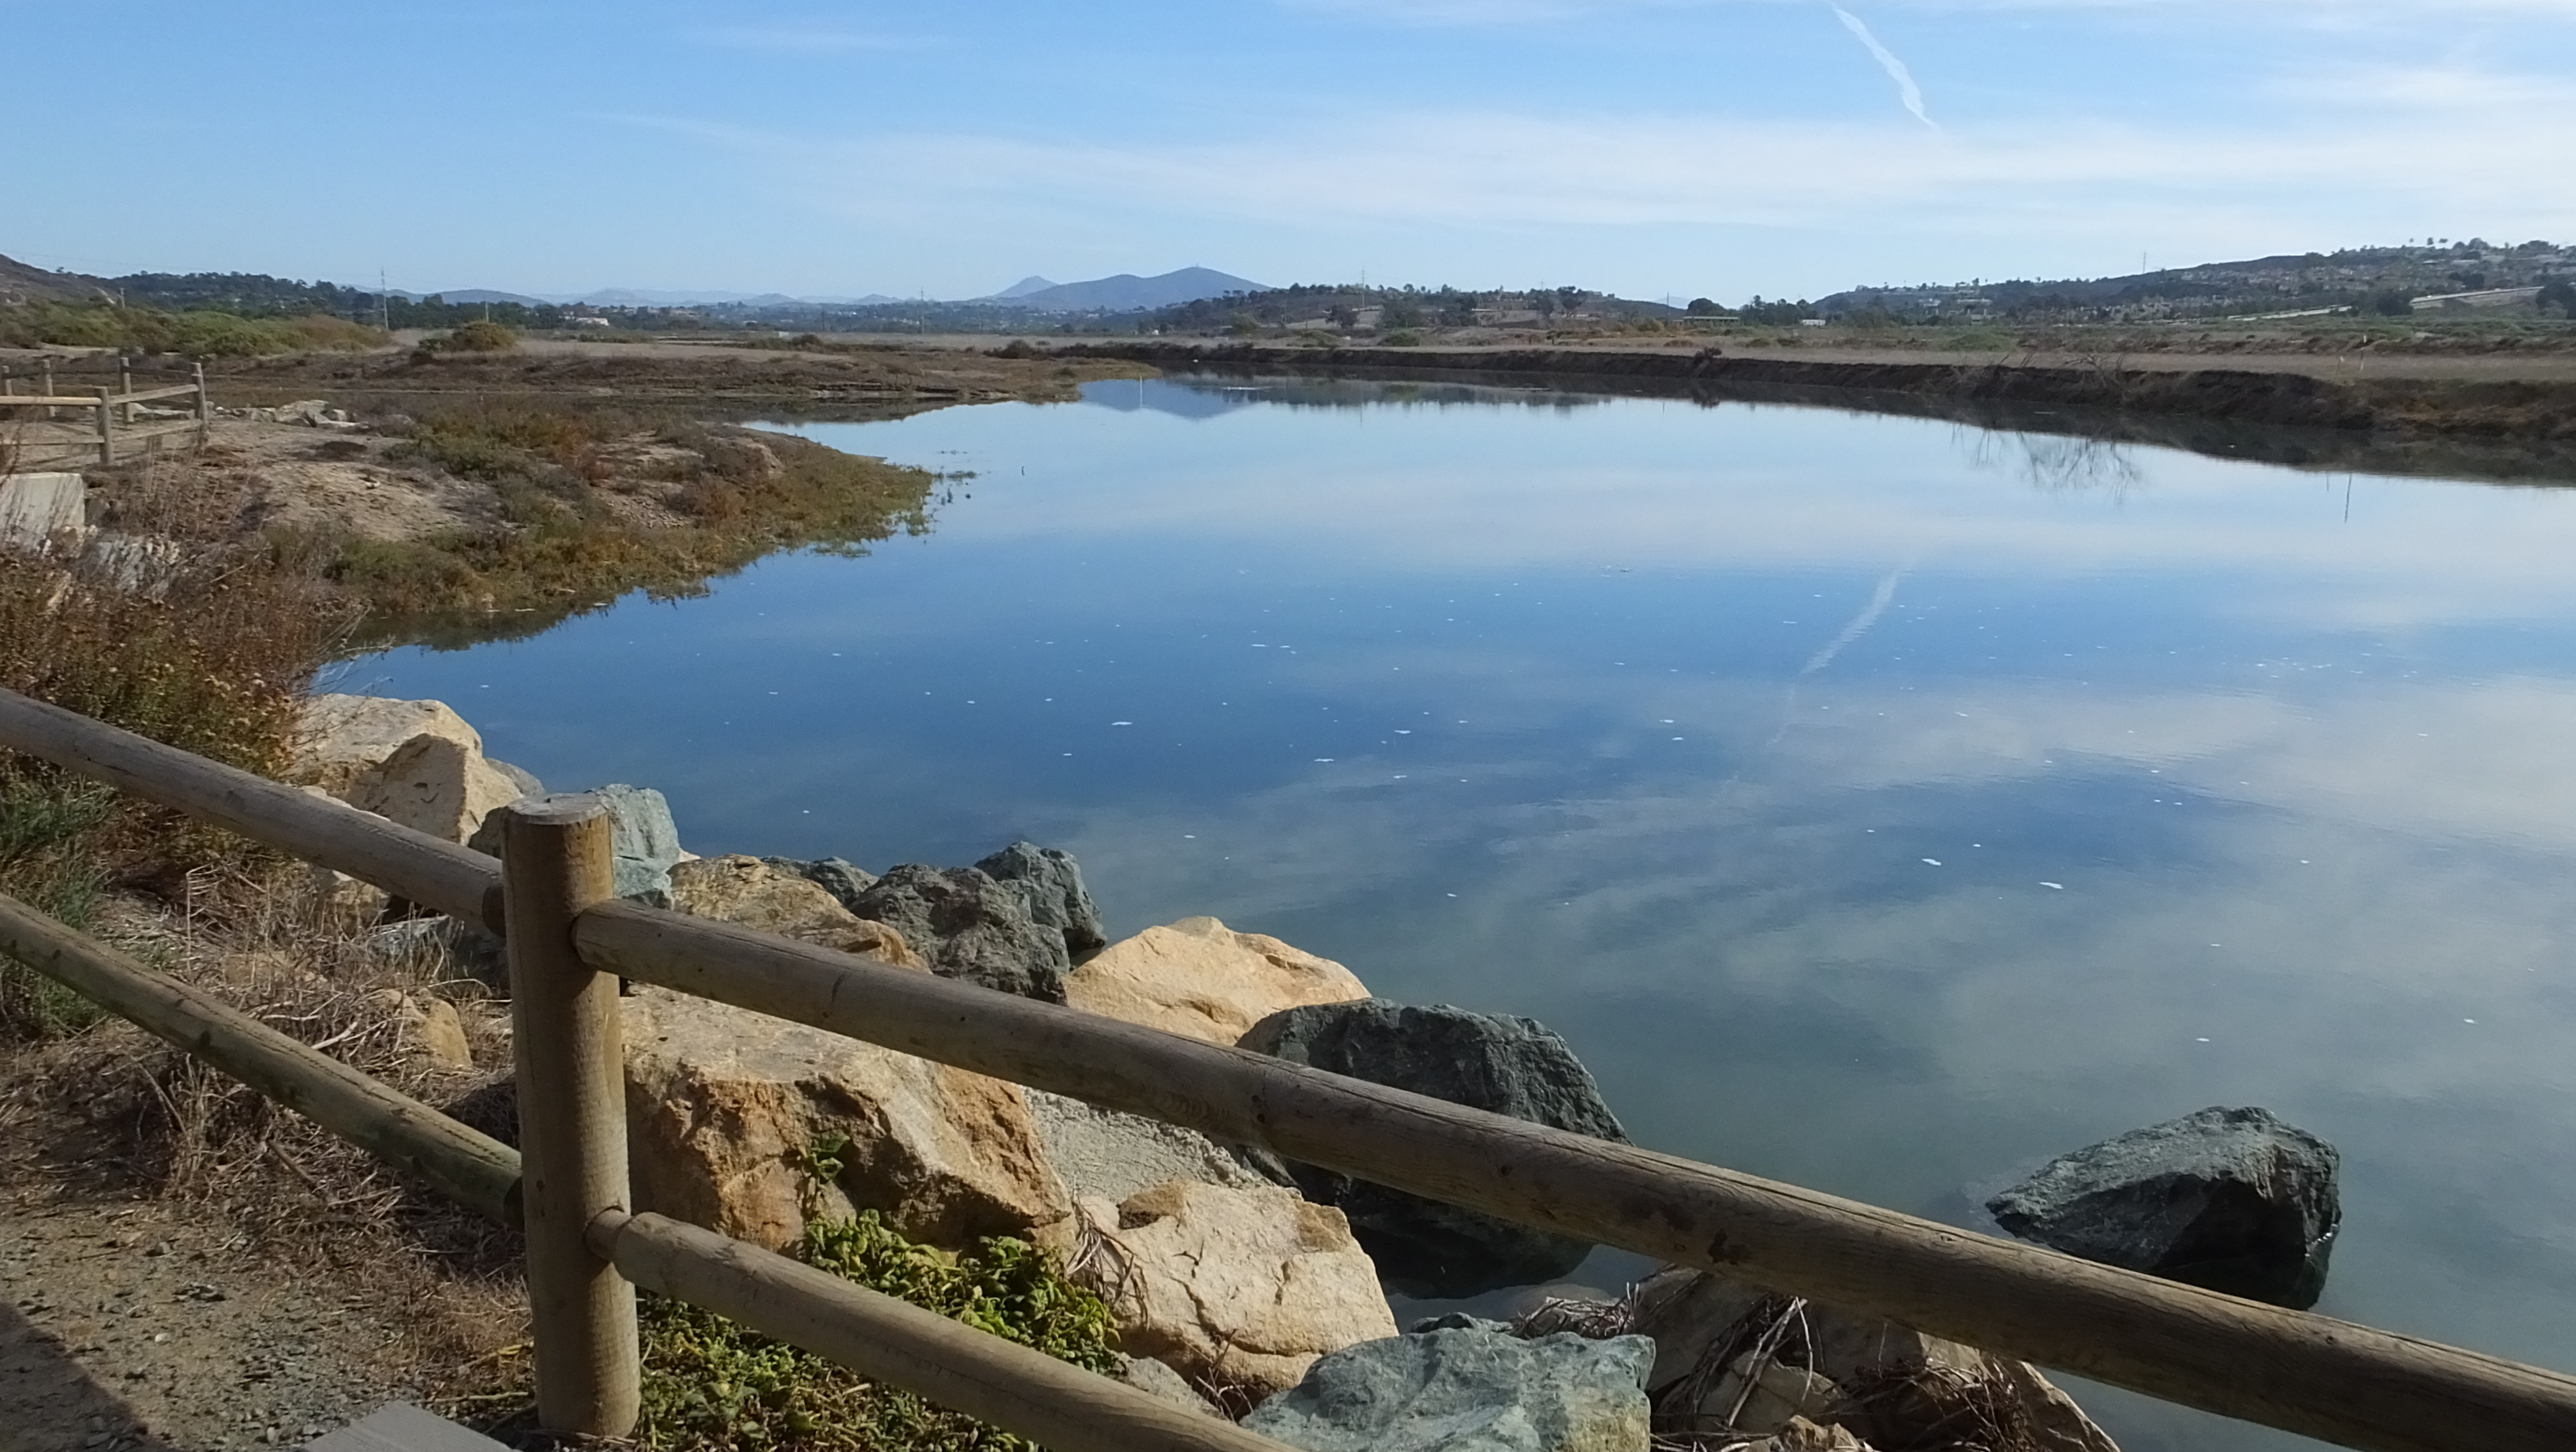 The San Dieguito Lagoon